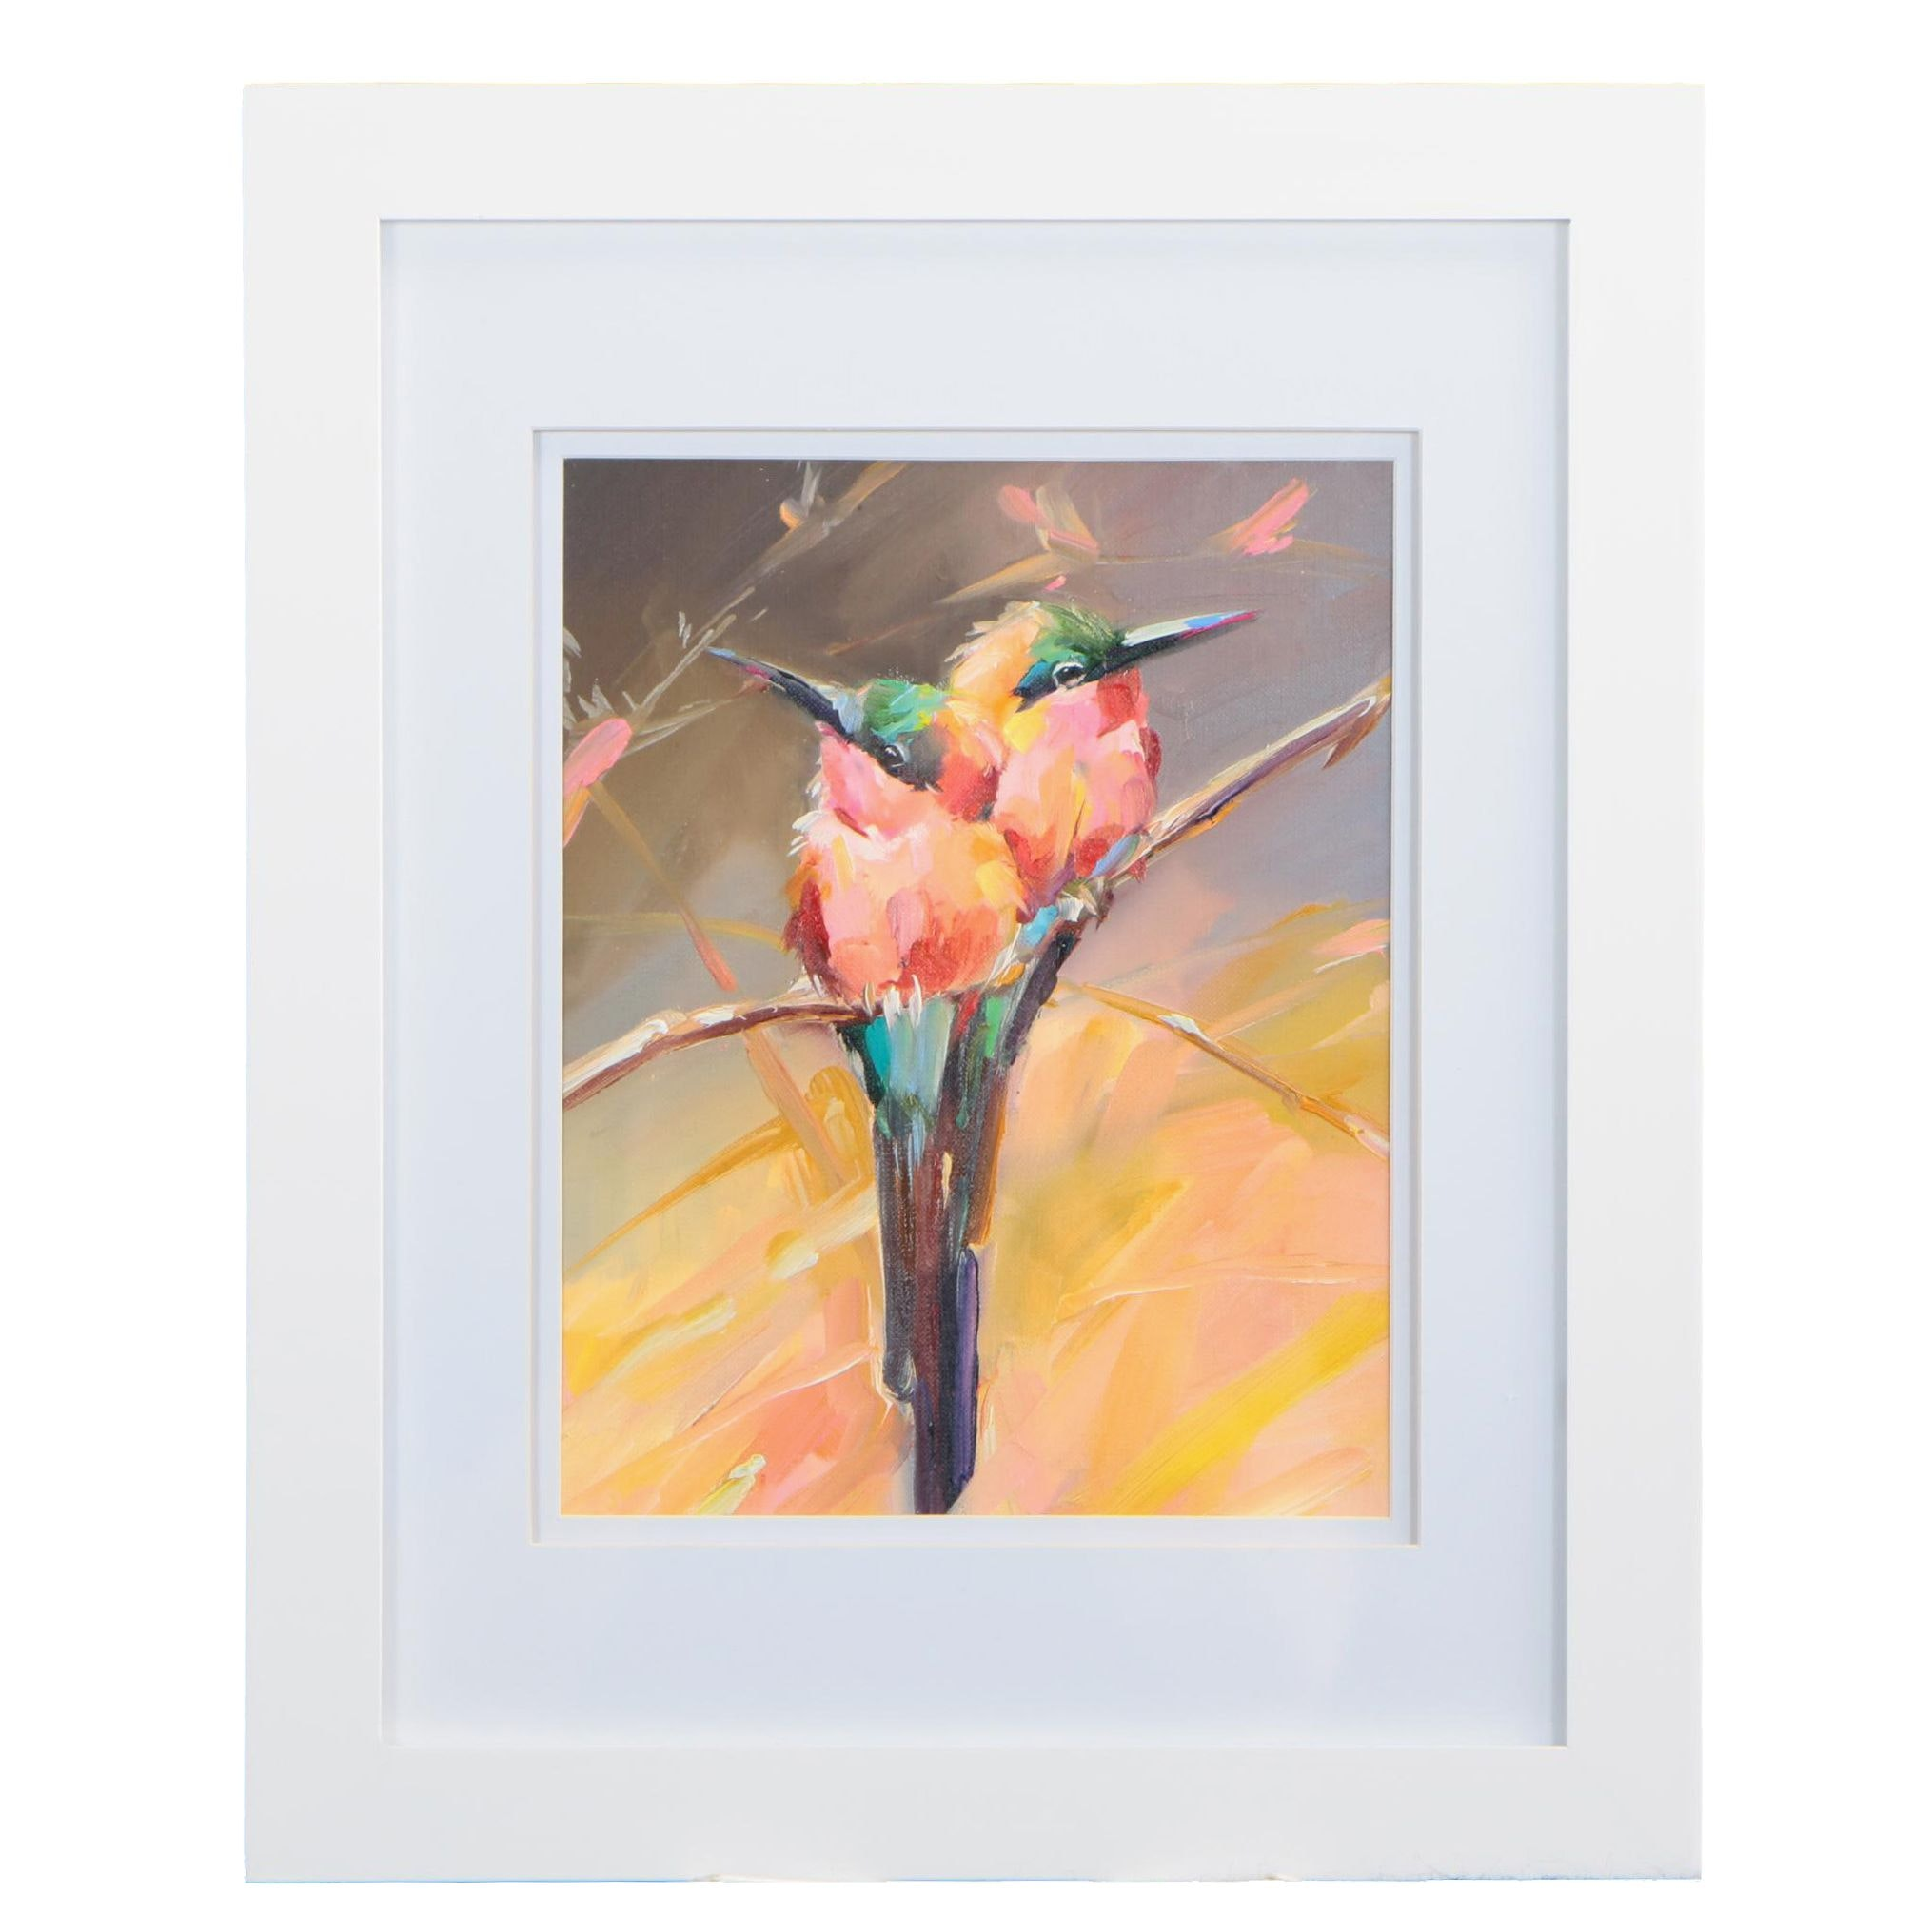 Oil Painting of Two Birds on a Branch